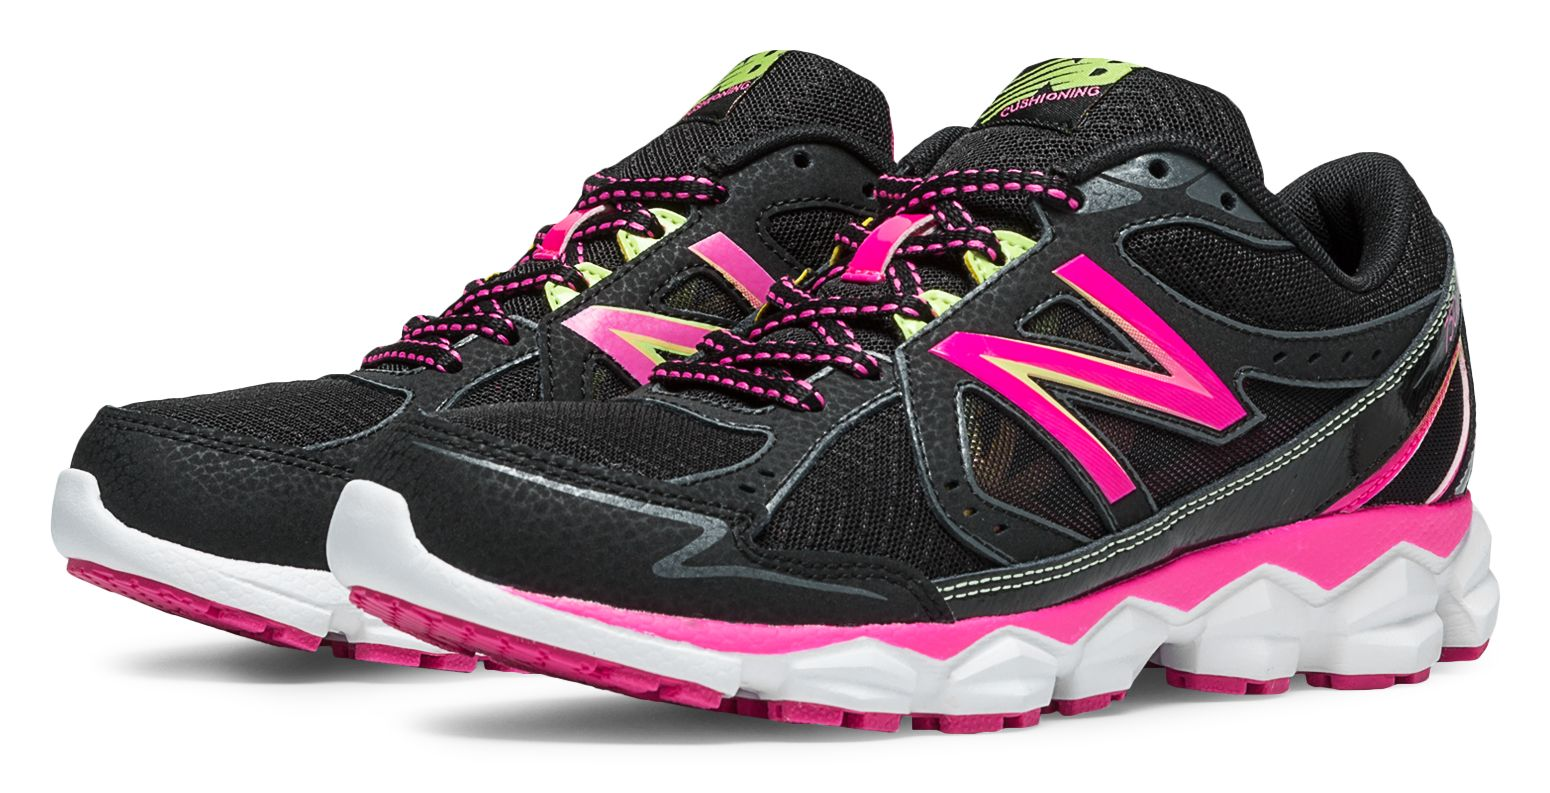 New Arrivals at the Official New Balance Outlet Store | Joe\u0027s Official New  Balance Outlet